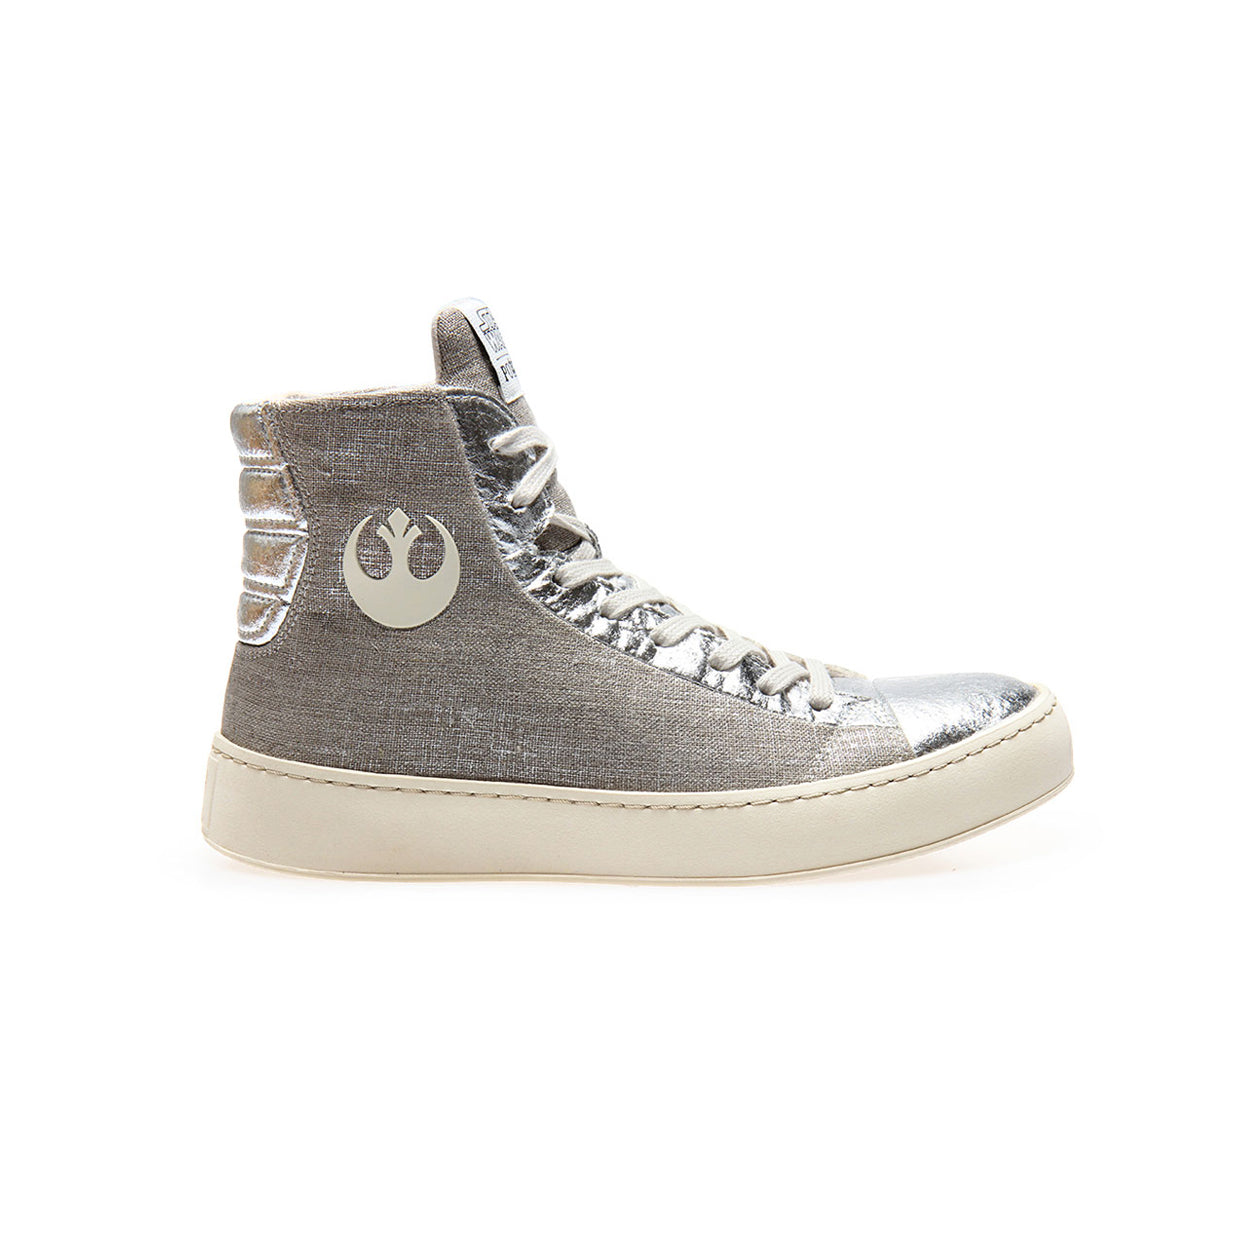 size 40 e63df c013d RESISTANCE Silver Limited Edition - Womens. Star Wars ...